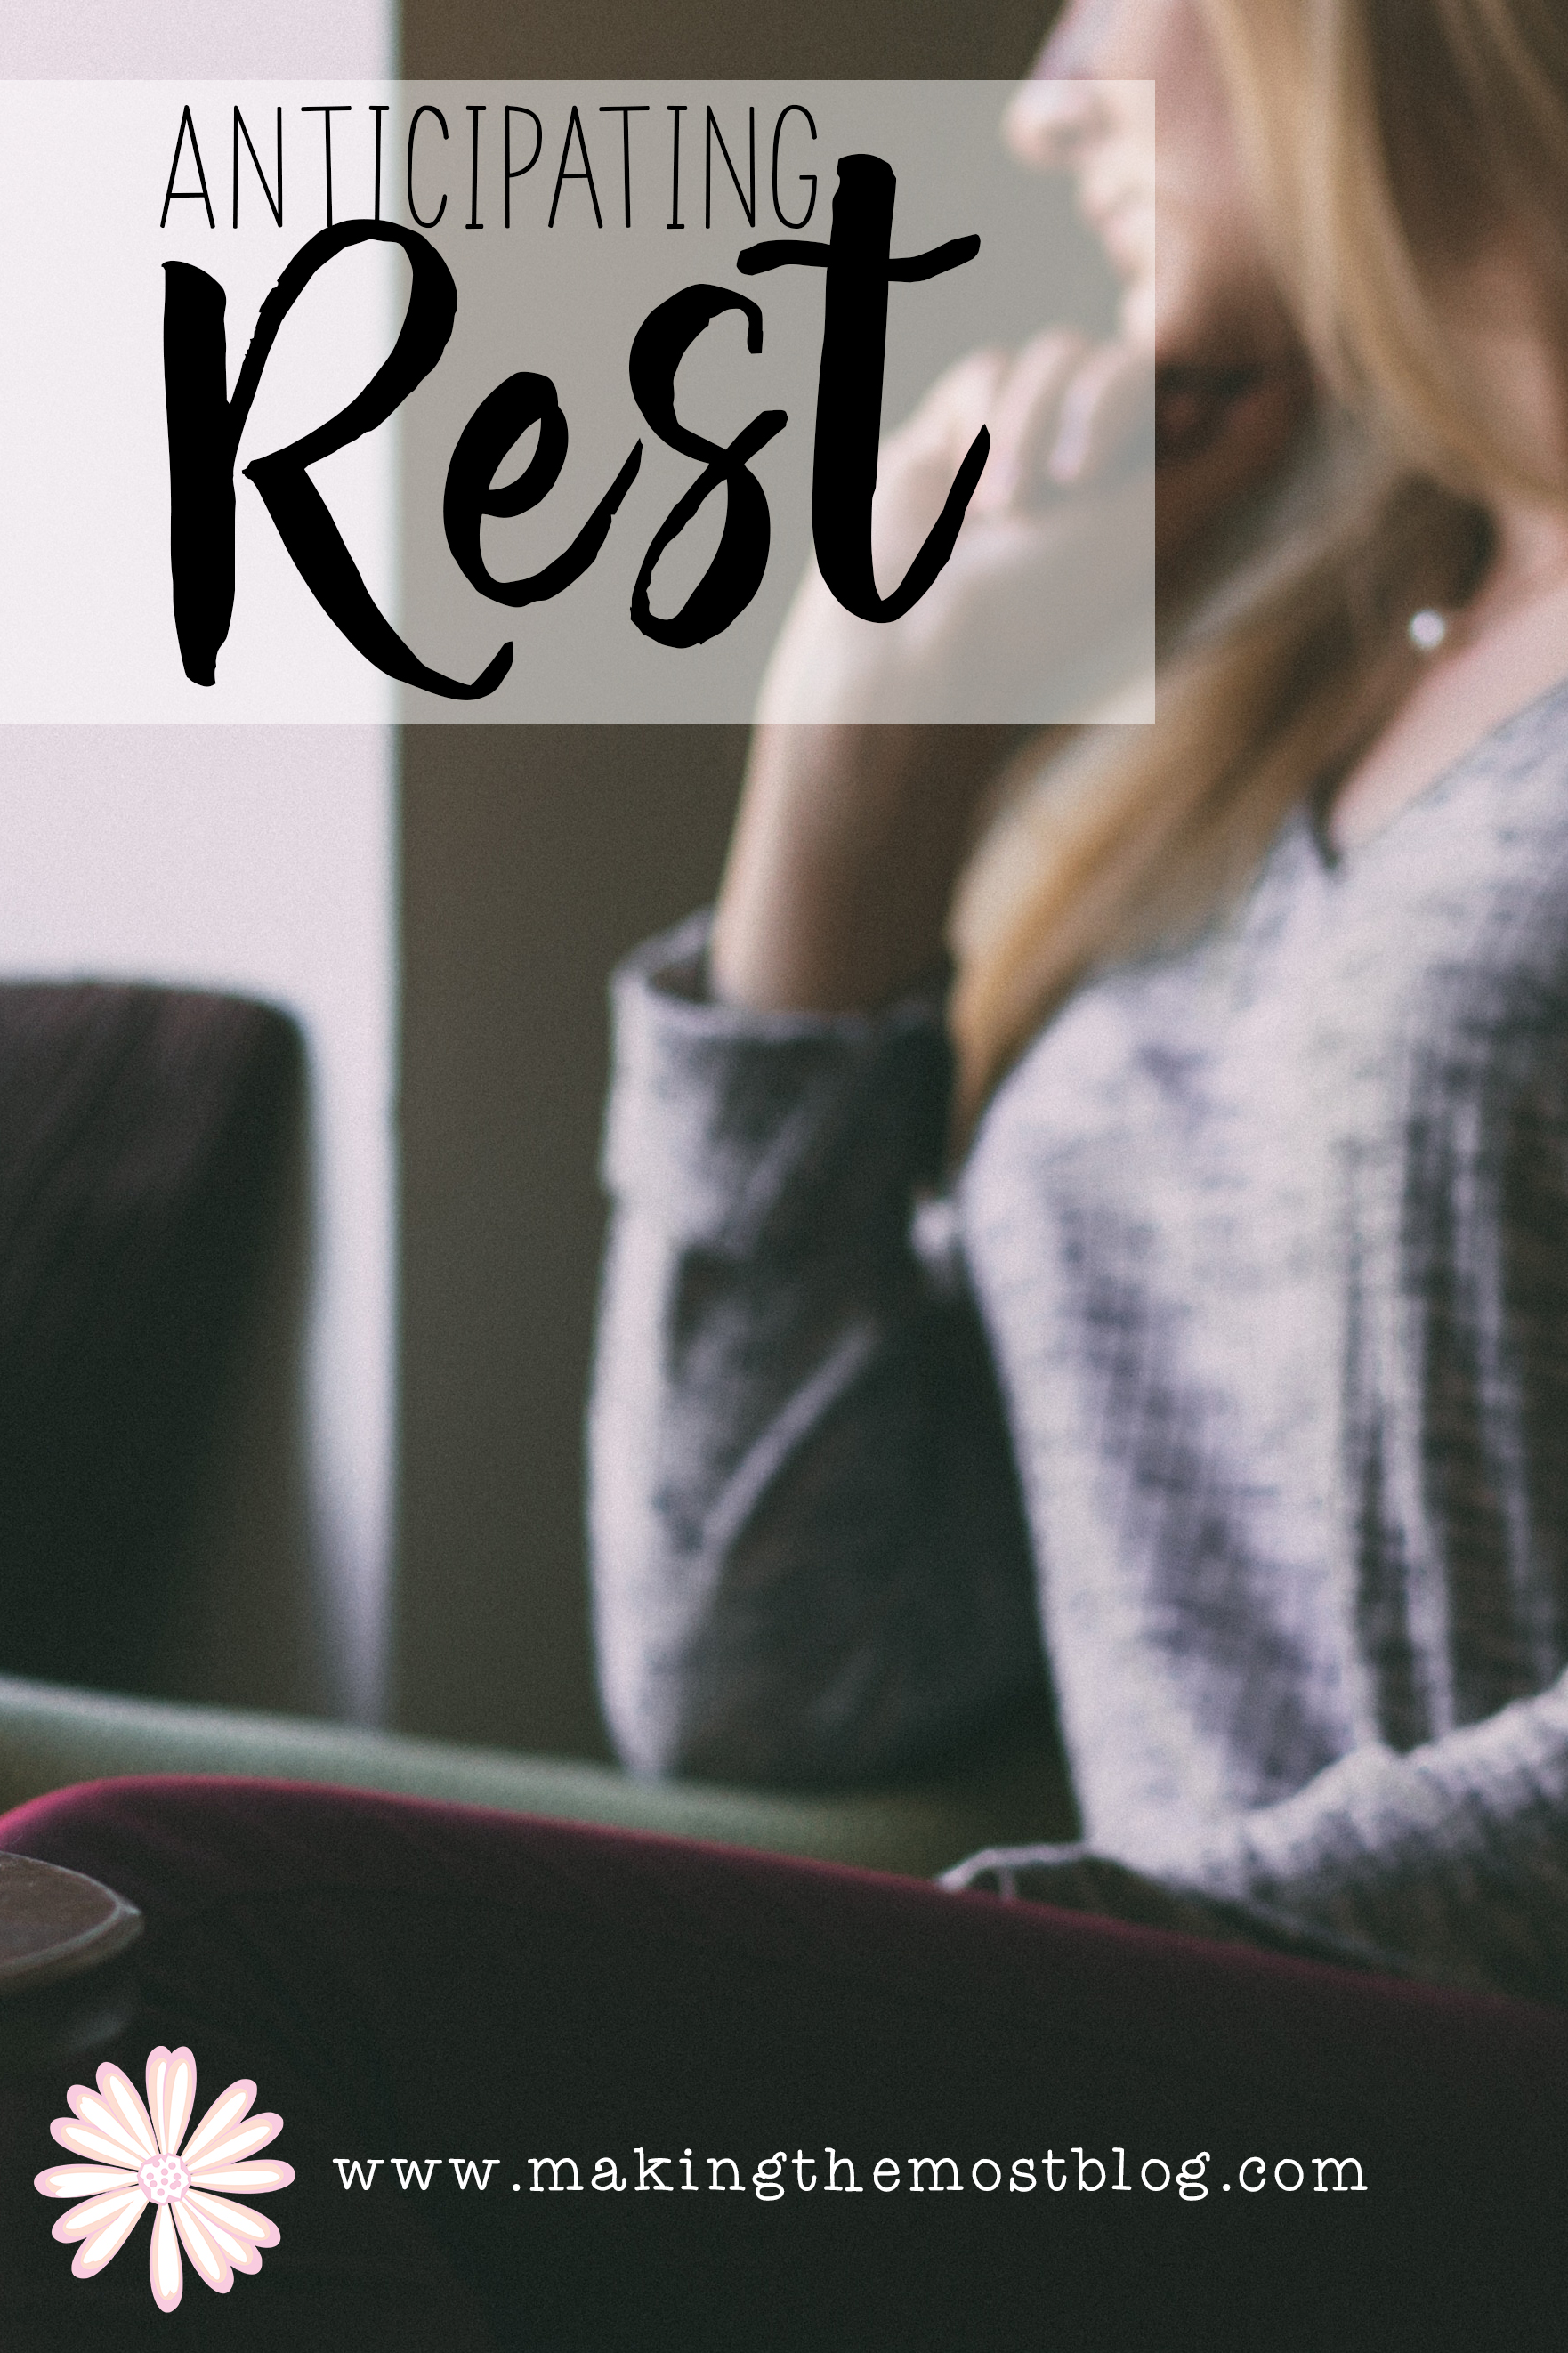 Anticipating Rest | Blog Post | Making The Most Blog